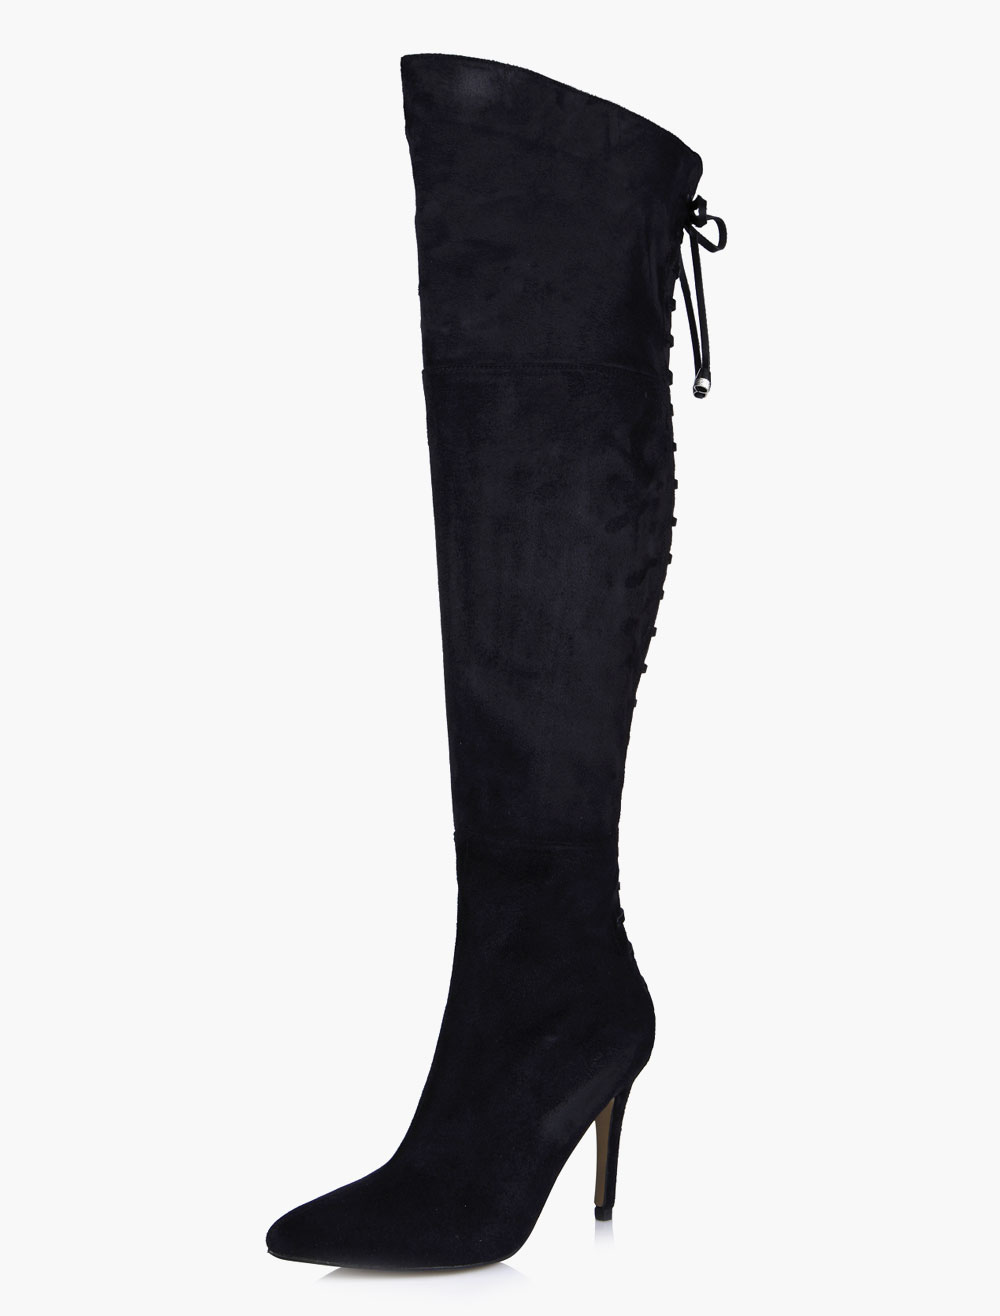 Buy Thigh High Boots Black Lace Up Pointed Toe Over Knee Boots for $69.51 in Milanoo store